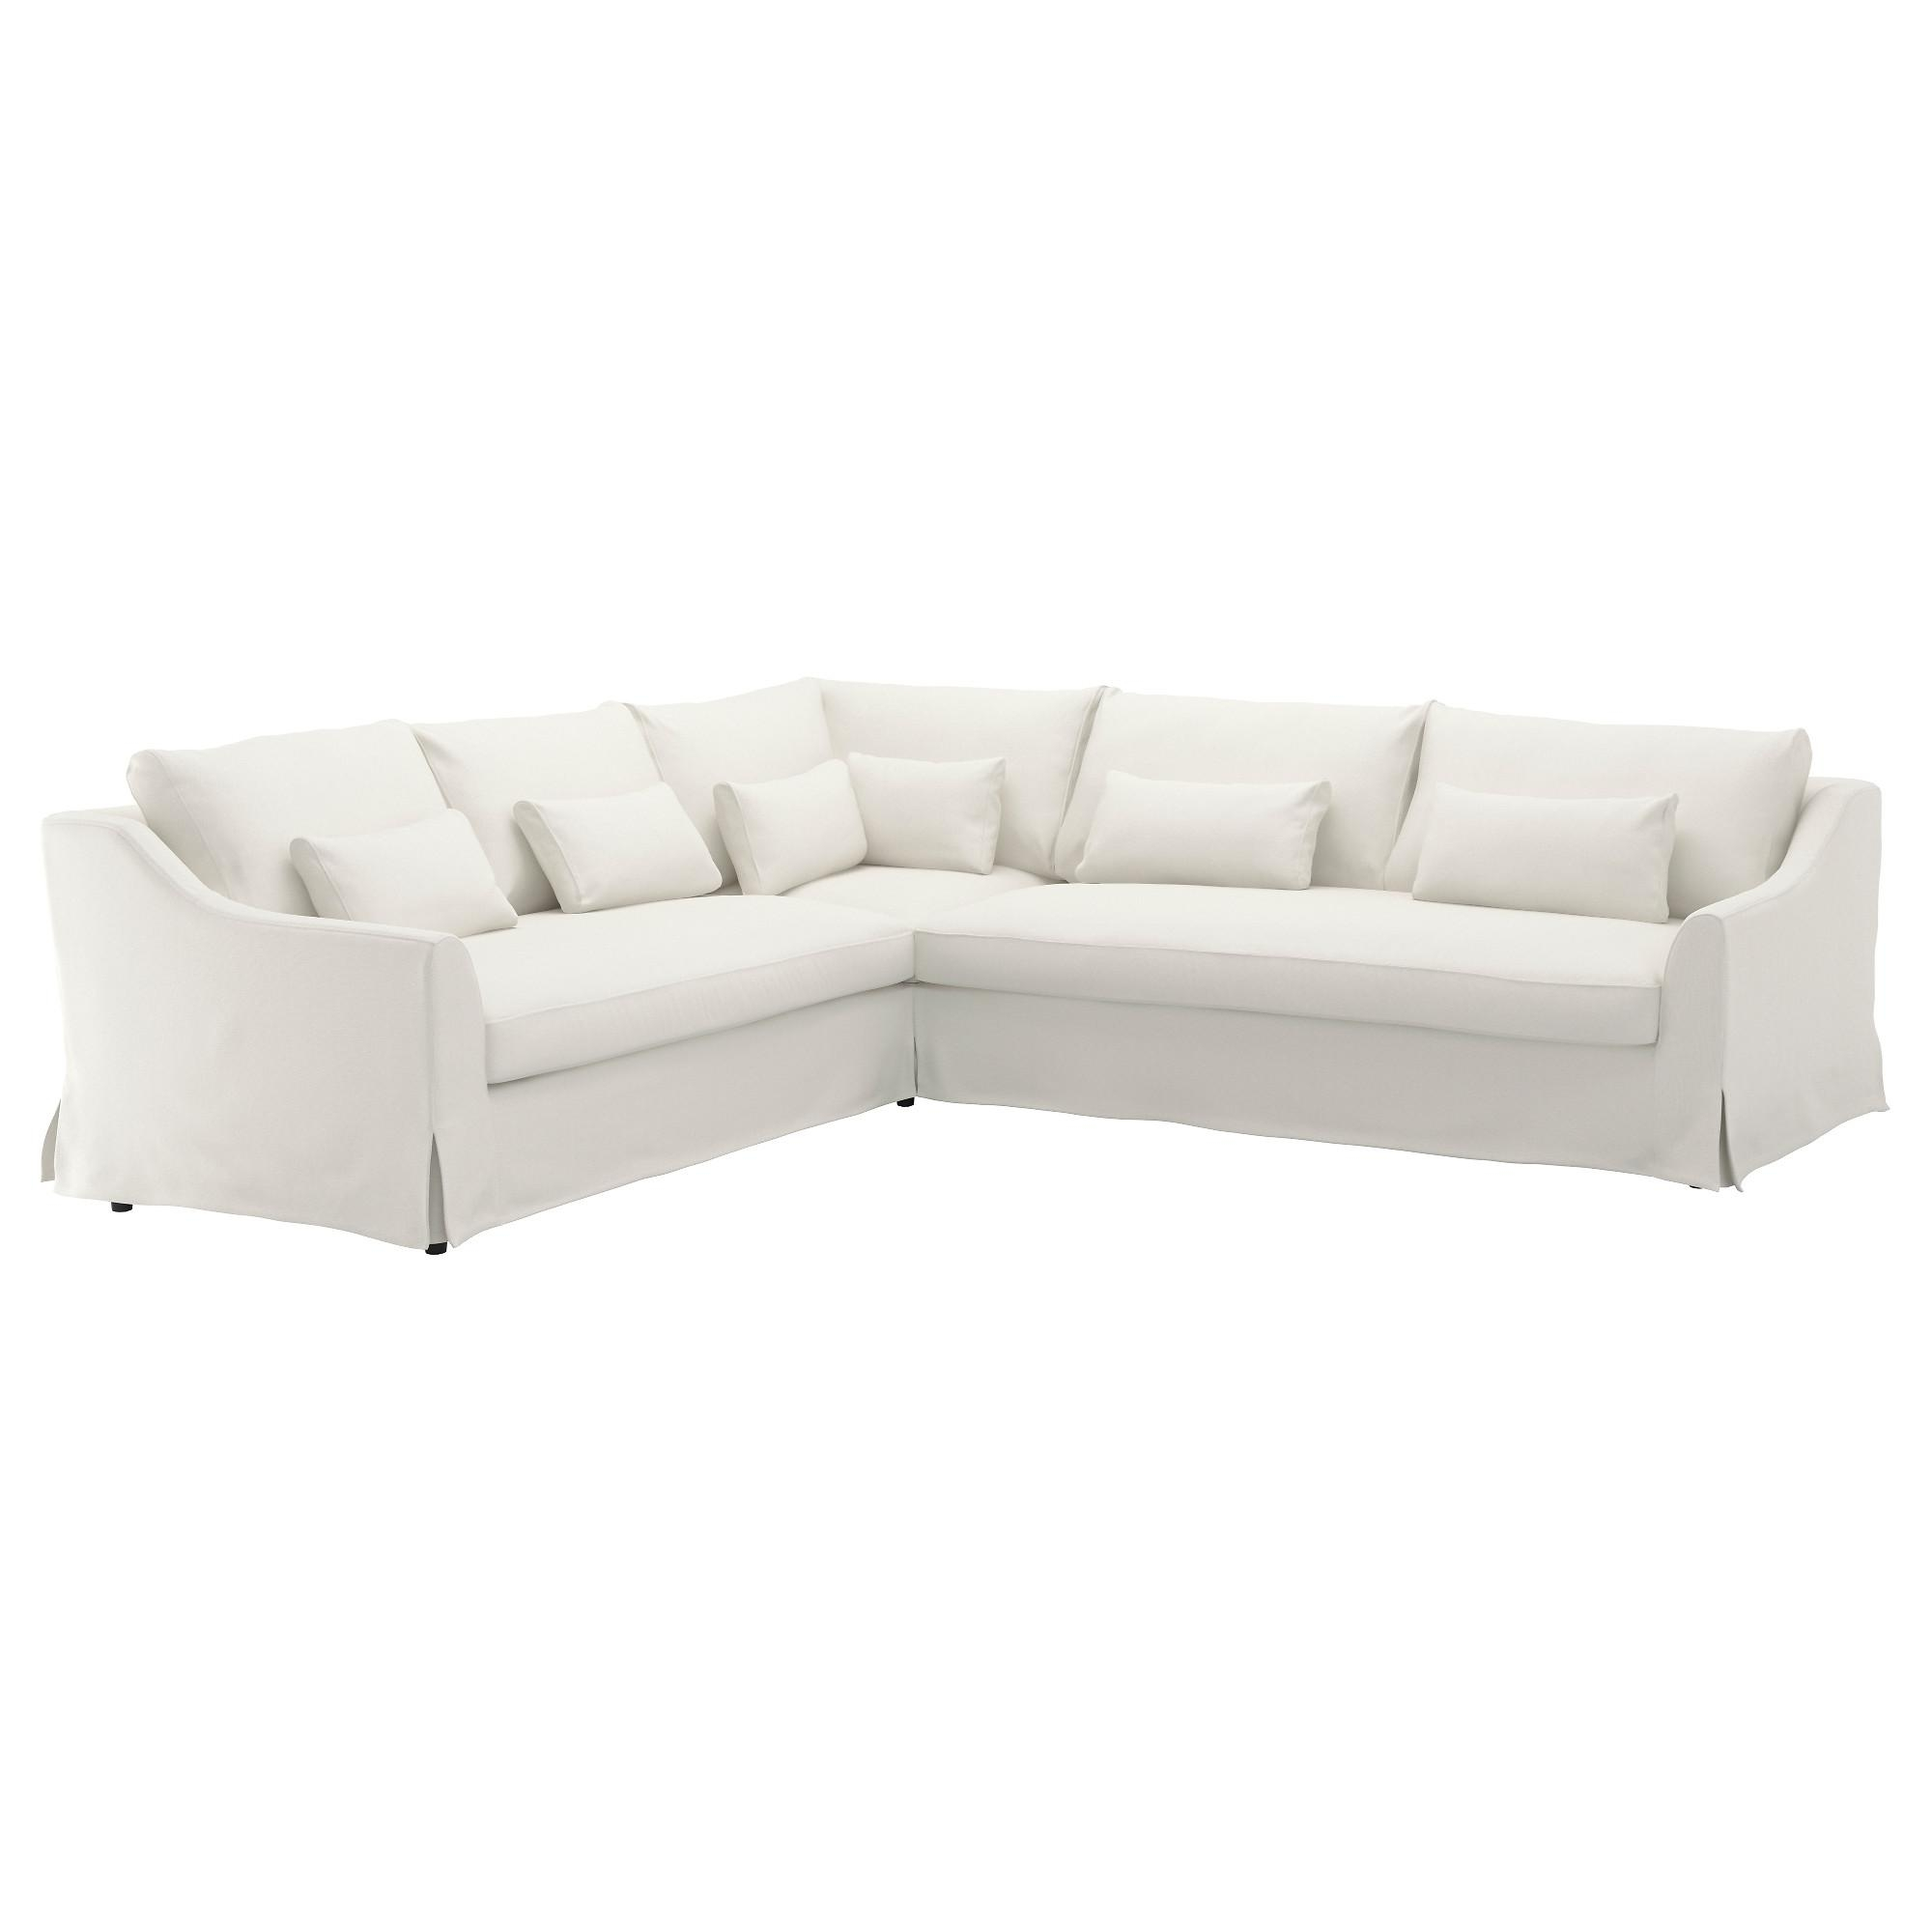 20 Photos White Fabric Sofas Sofa Ideas